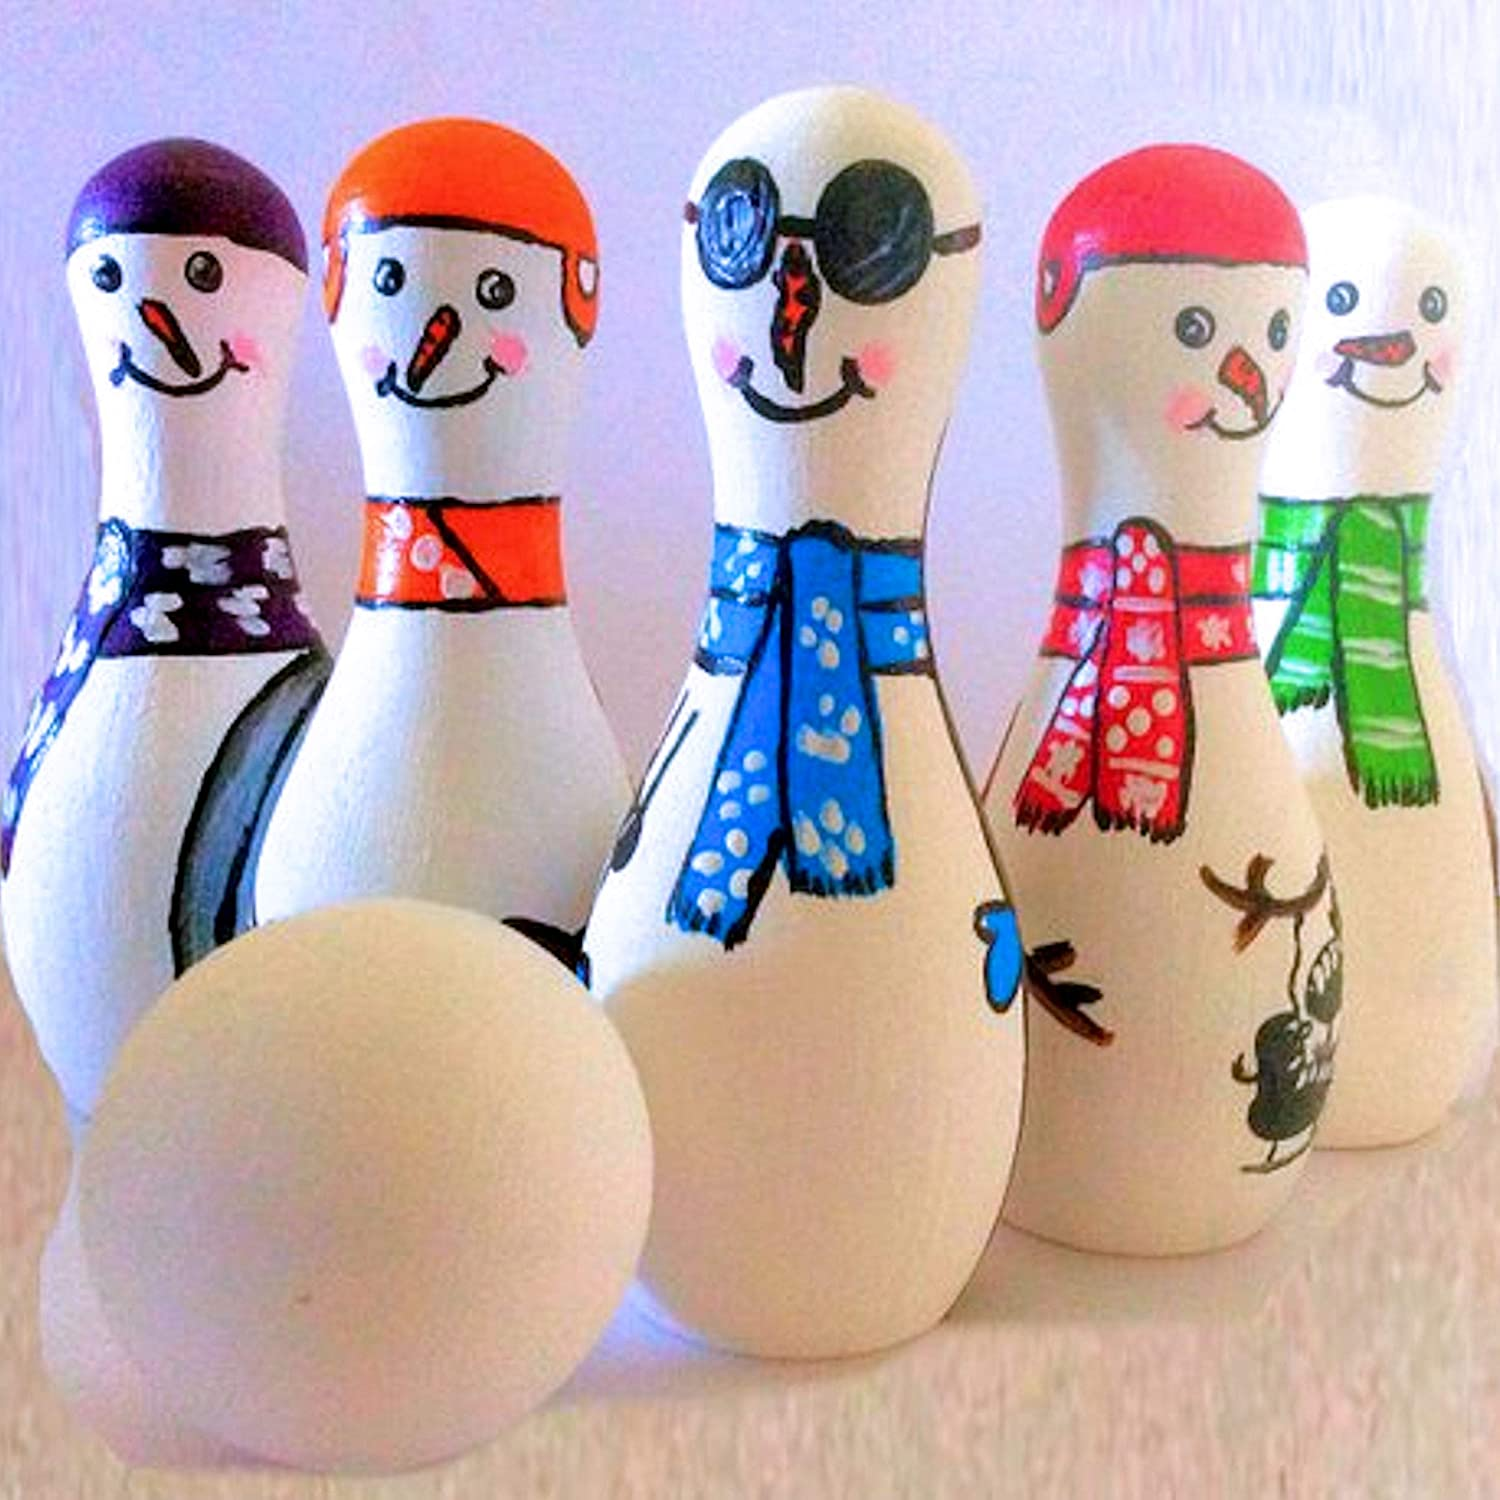 MDH Toys Snowman Tabletop Bowling Game Stocking Stuffer Gift For Kids made in Canada